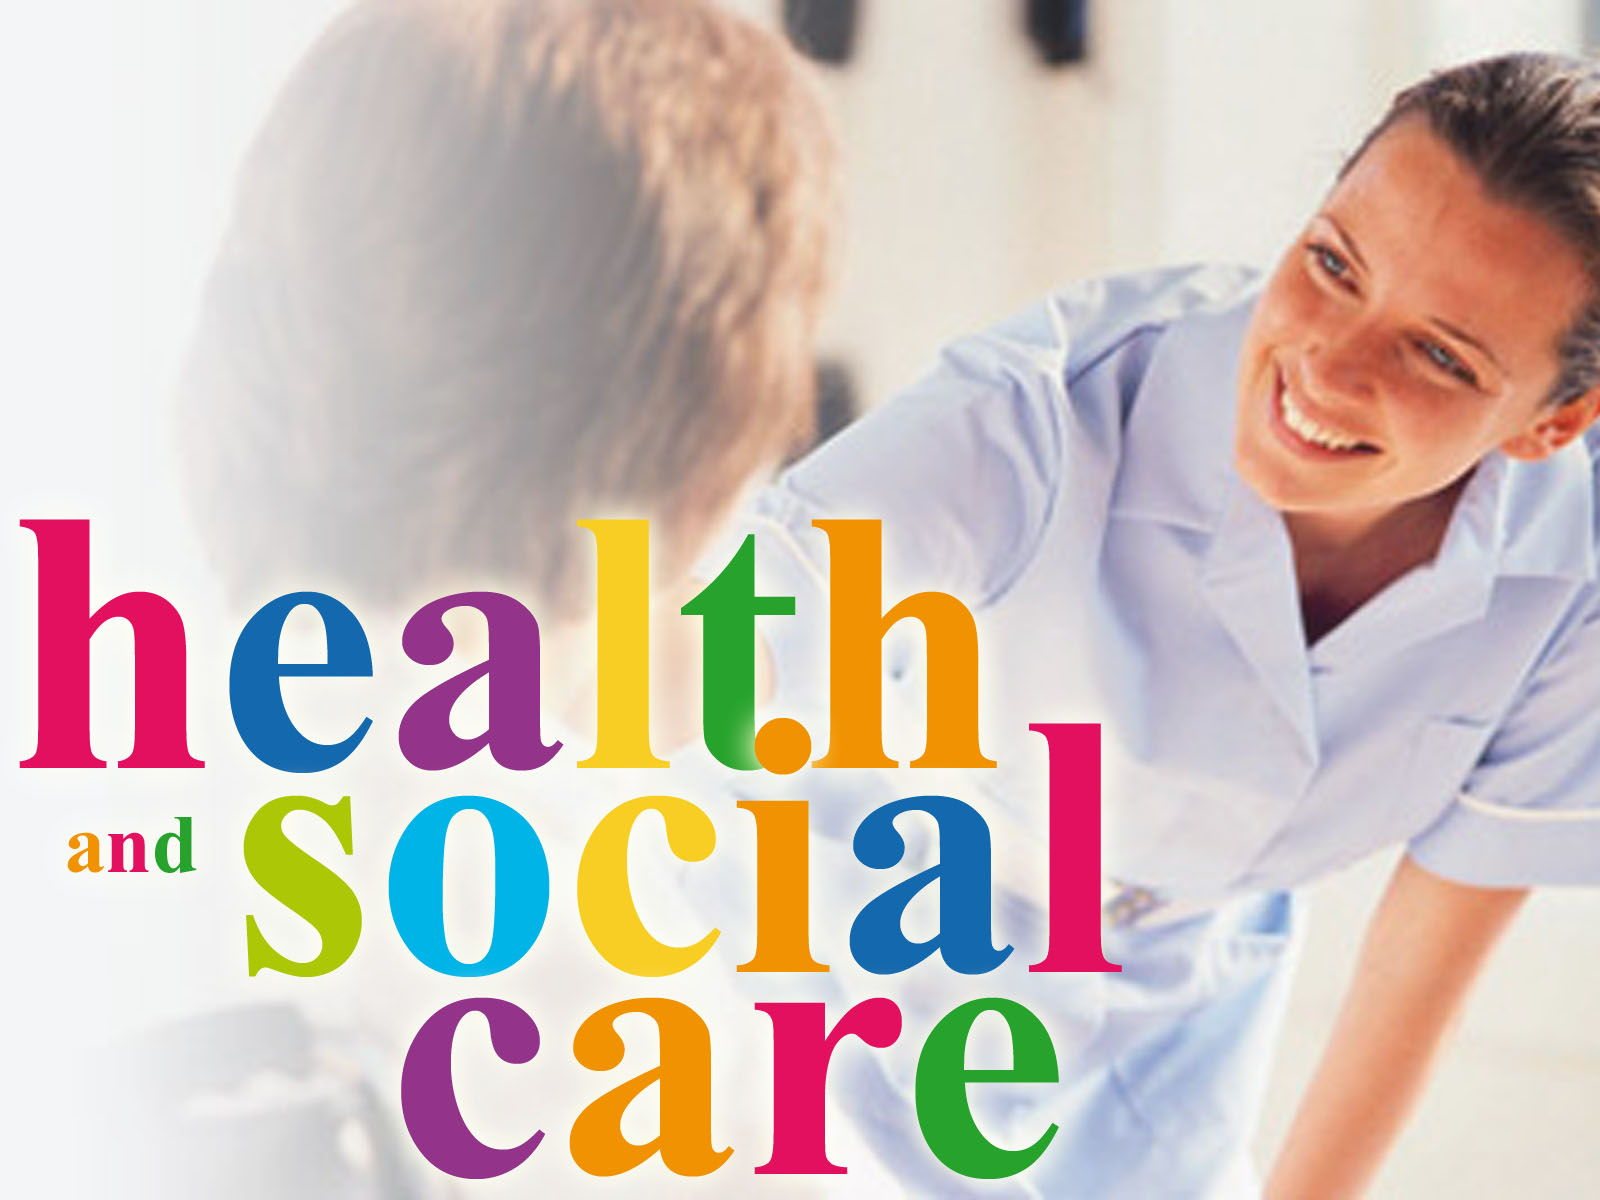 R021 LO1-3 OCR CNAT Health and Social Care